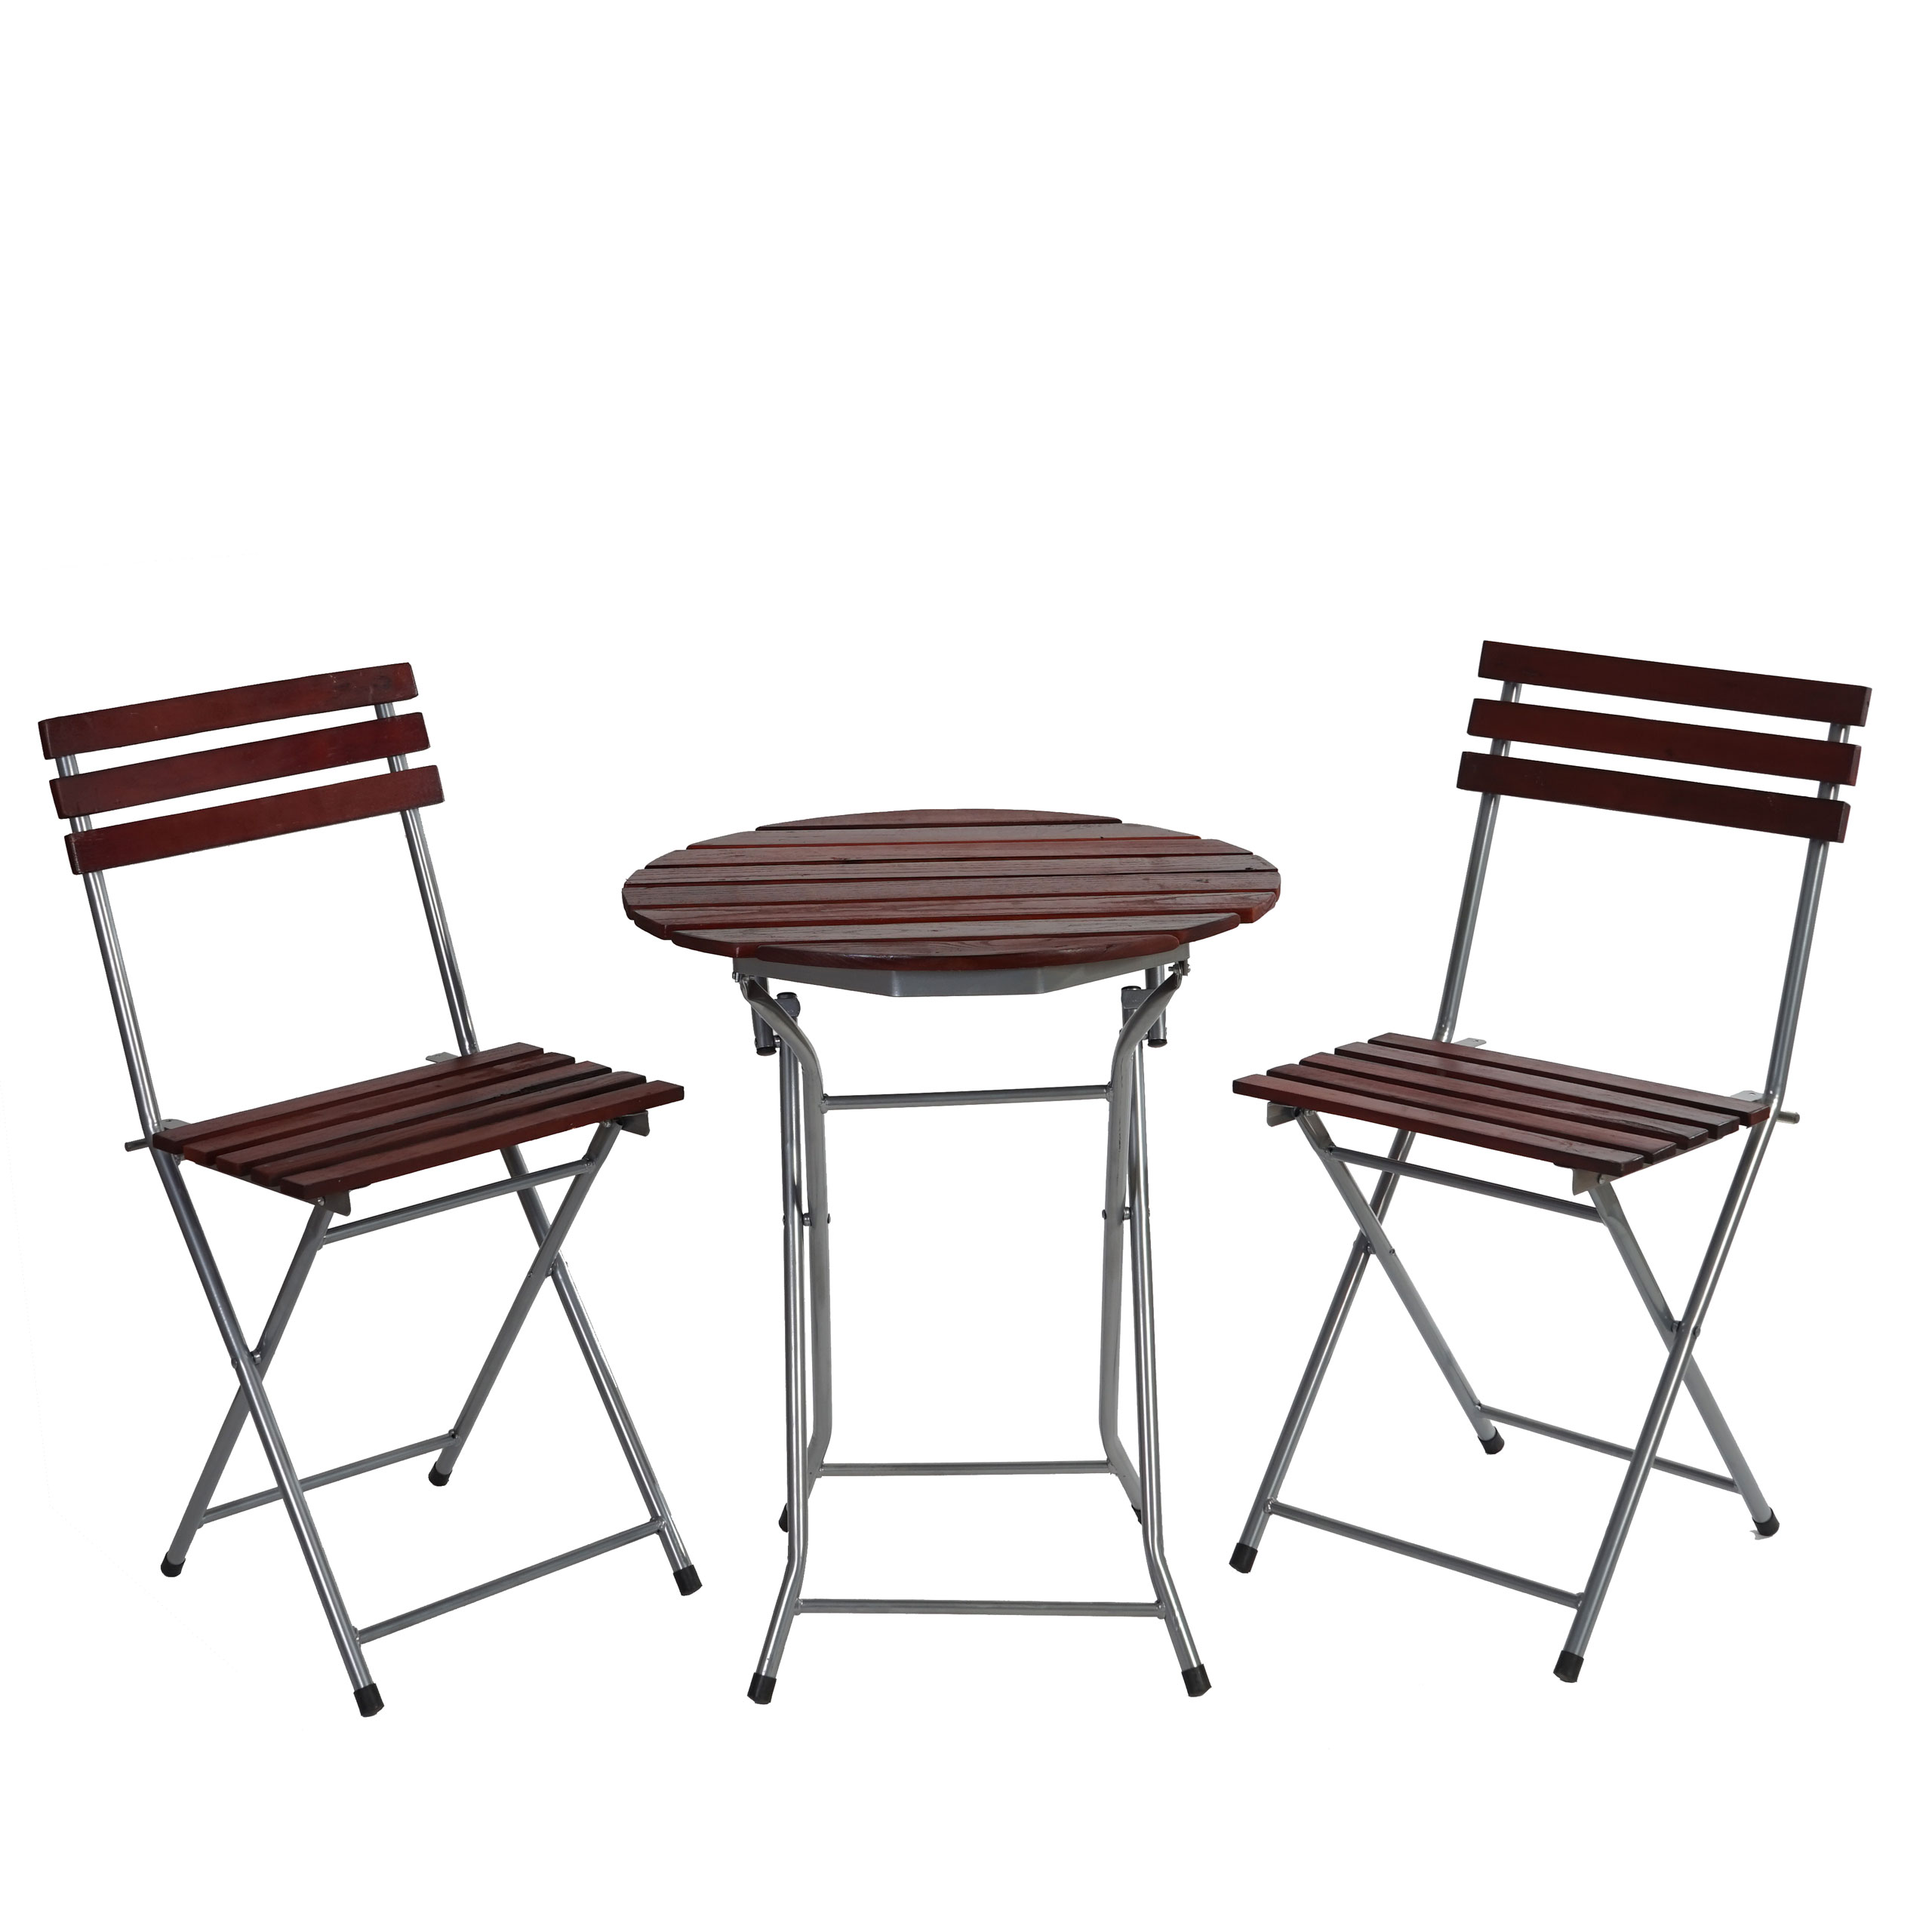 biergarten garnitur berlin bistro garten set tisch st hle ge lt dunkelbraun ebay. Black Bedroom Furniture Sets. Home Design Ideas